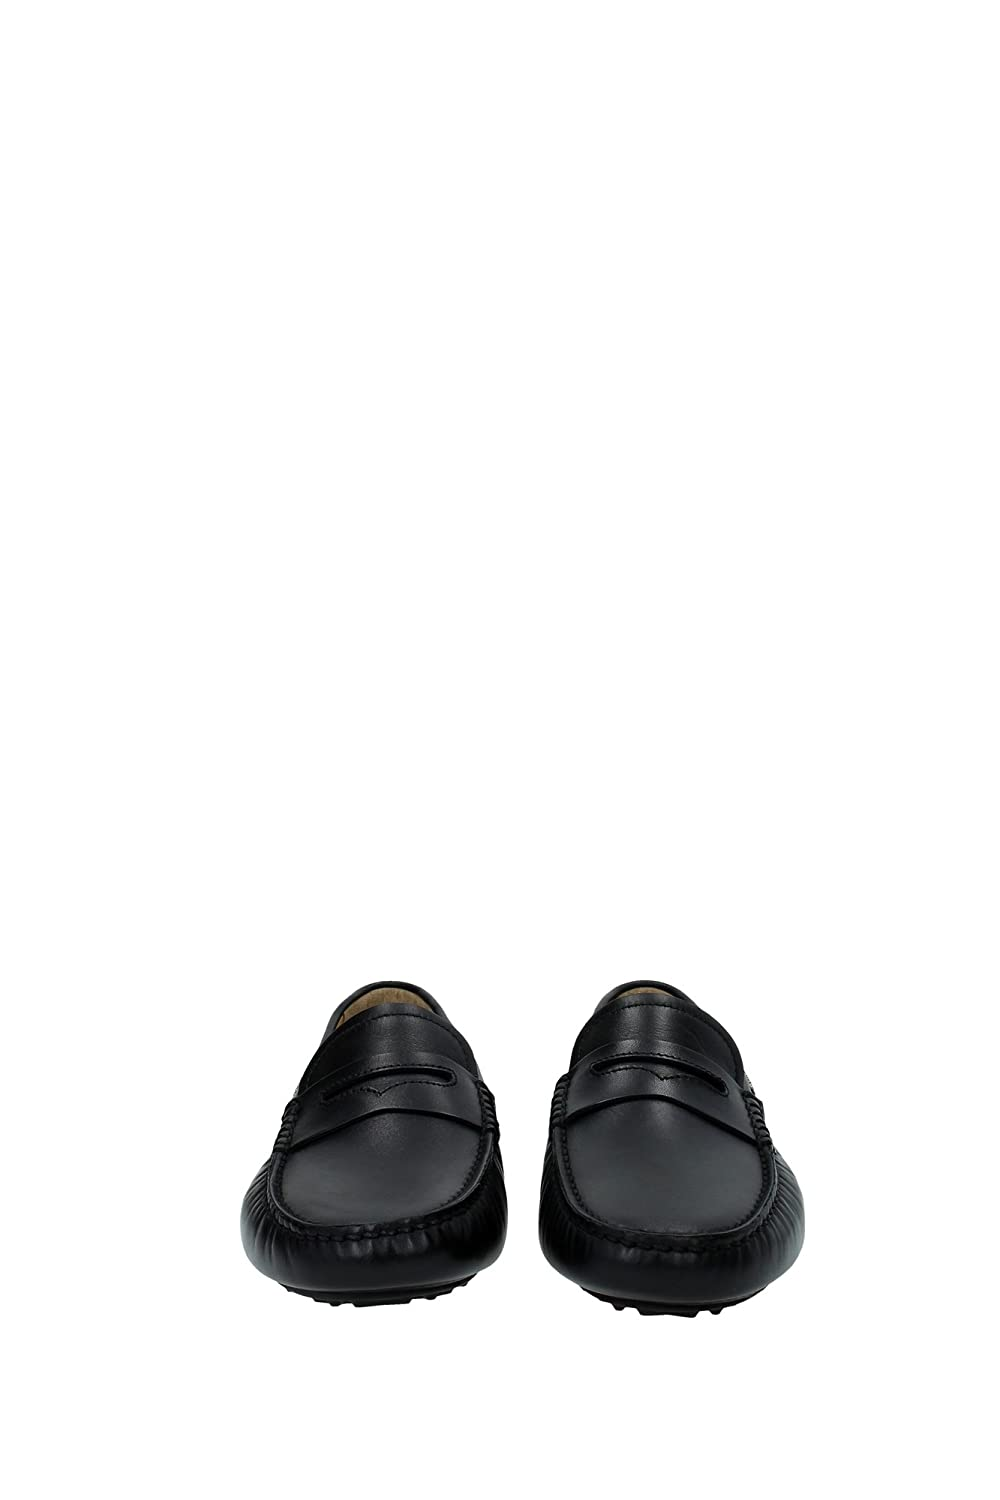 Mocasines Bally Hombre - (6198432BLACK) EU: Amazon.es: Zapatos y complementos